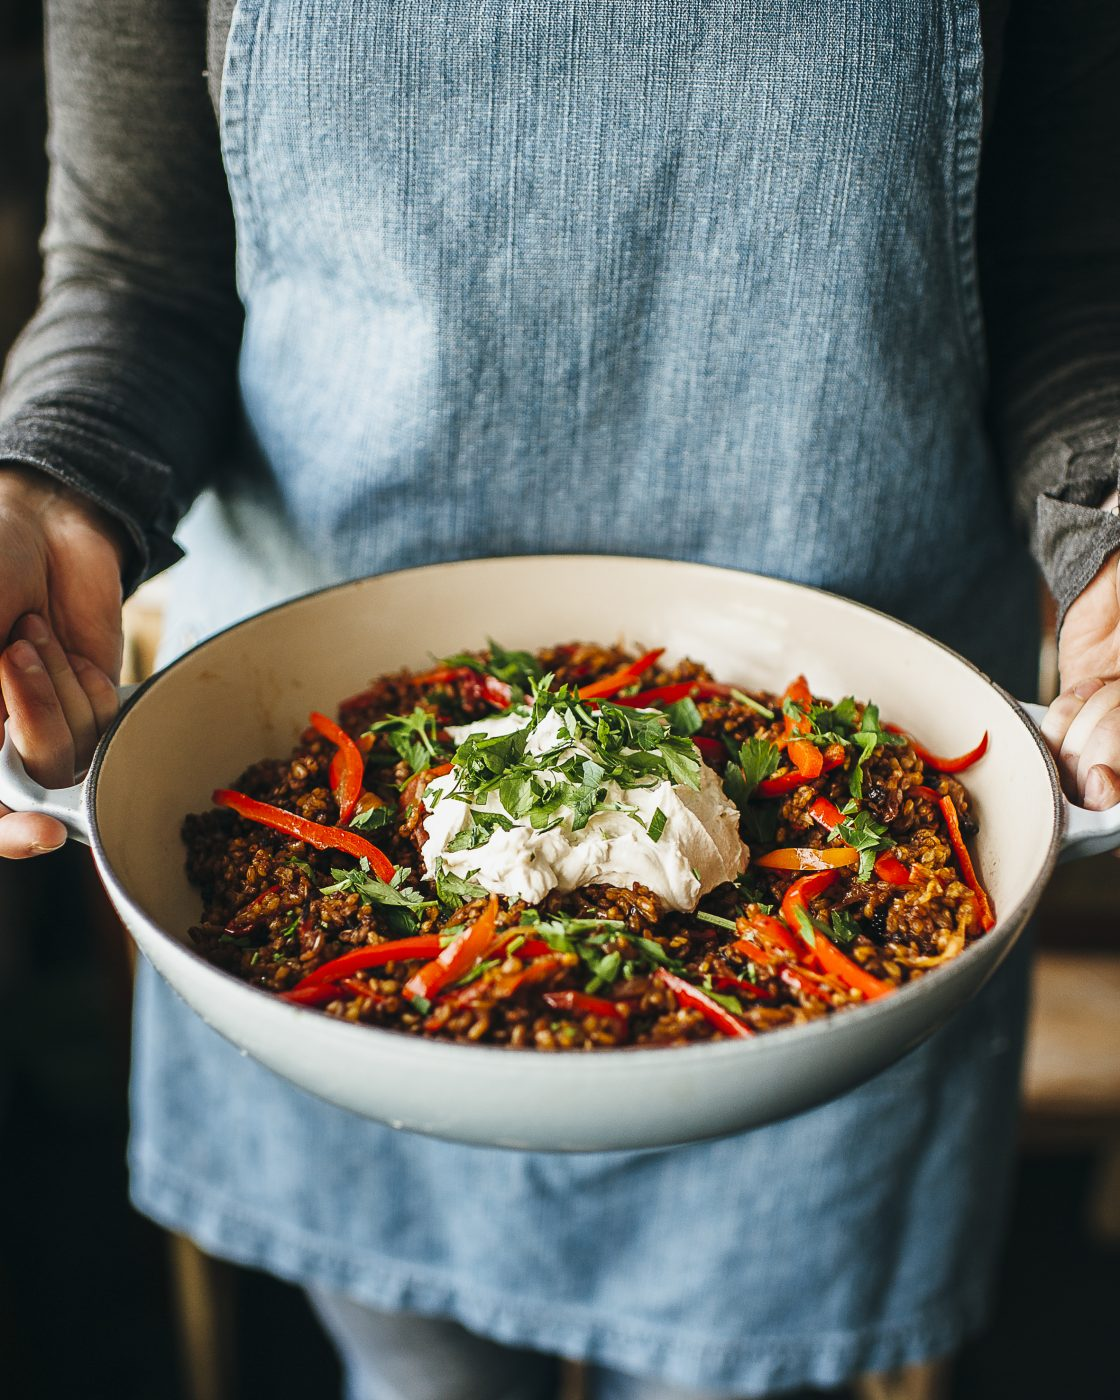 Ottolenghi-Inspired Dishes